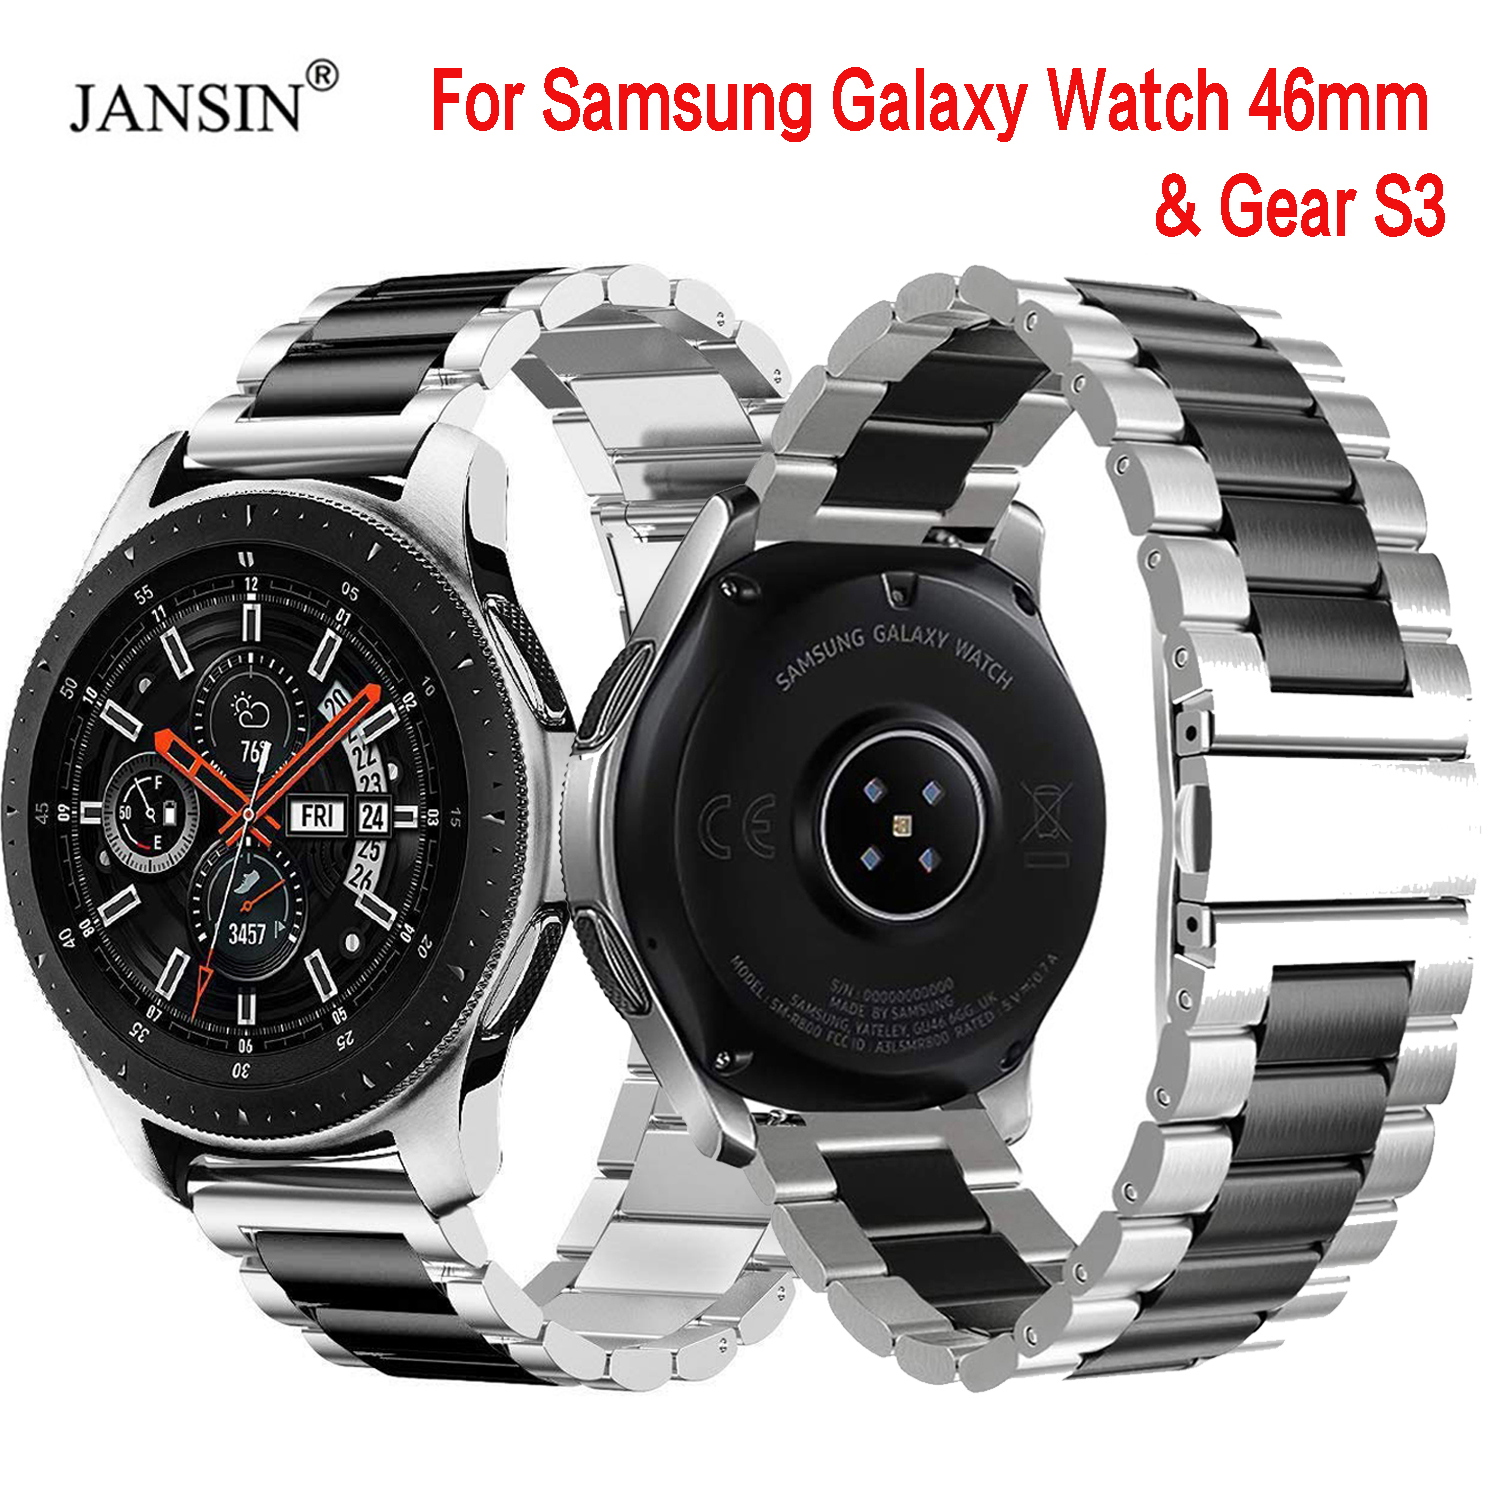 22mm Width Universal Stainless Steel Band For Samsung Galaxy Watch 46mm /Gear S3 Classic/S3 Frontier Watch Strap Metal Wristband